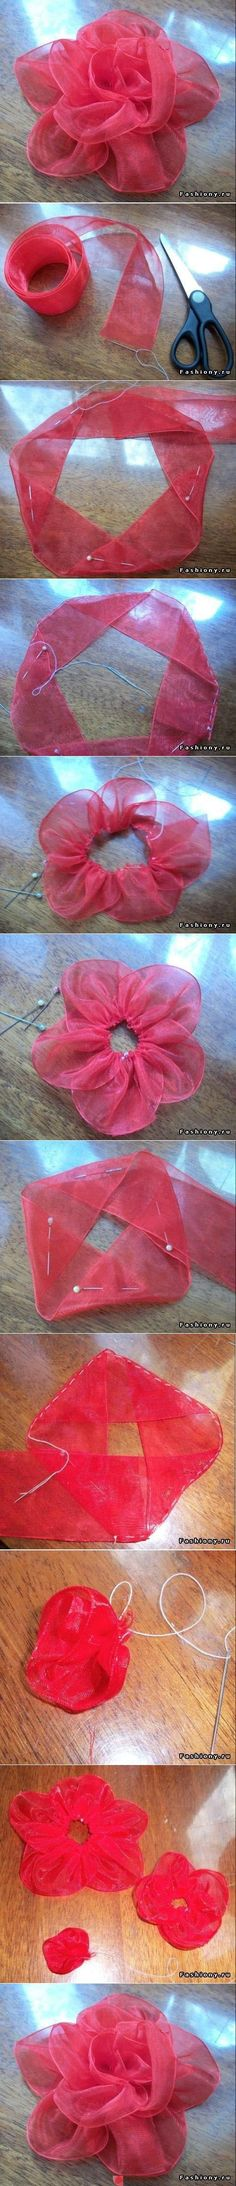 DIY Ribbon Tape Flower Tutorial in pictures Ribbon Art, Fabric Ribbon, Ribbon Crafts, Flower Crafts, Fabric Crafts, Sewing Crafts, Diy Crafts, Ribbon Rose, Organza Ribbon